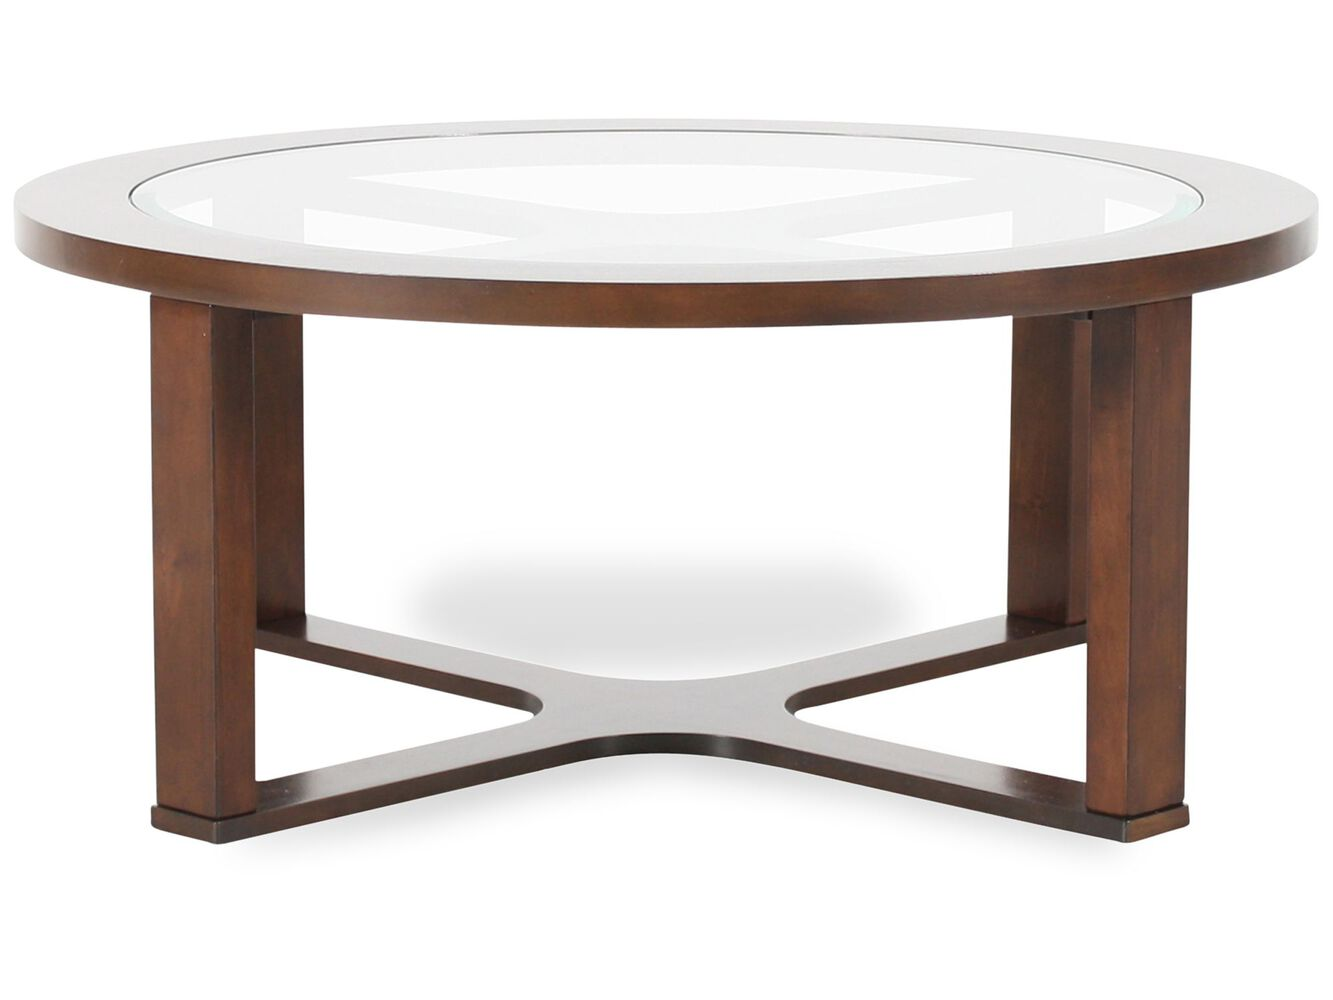 Round contemporary cocktail table in dark merlot mathis brothers round contemporary cocktail table geotapseo Image collections